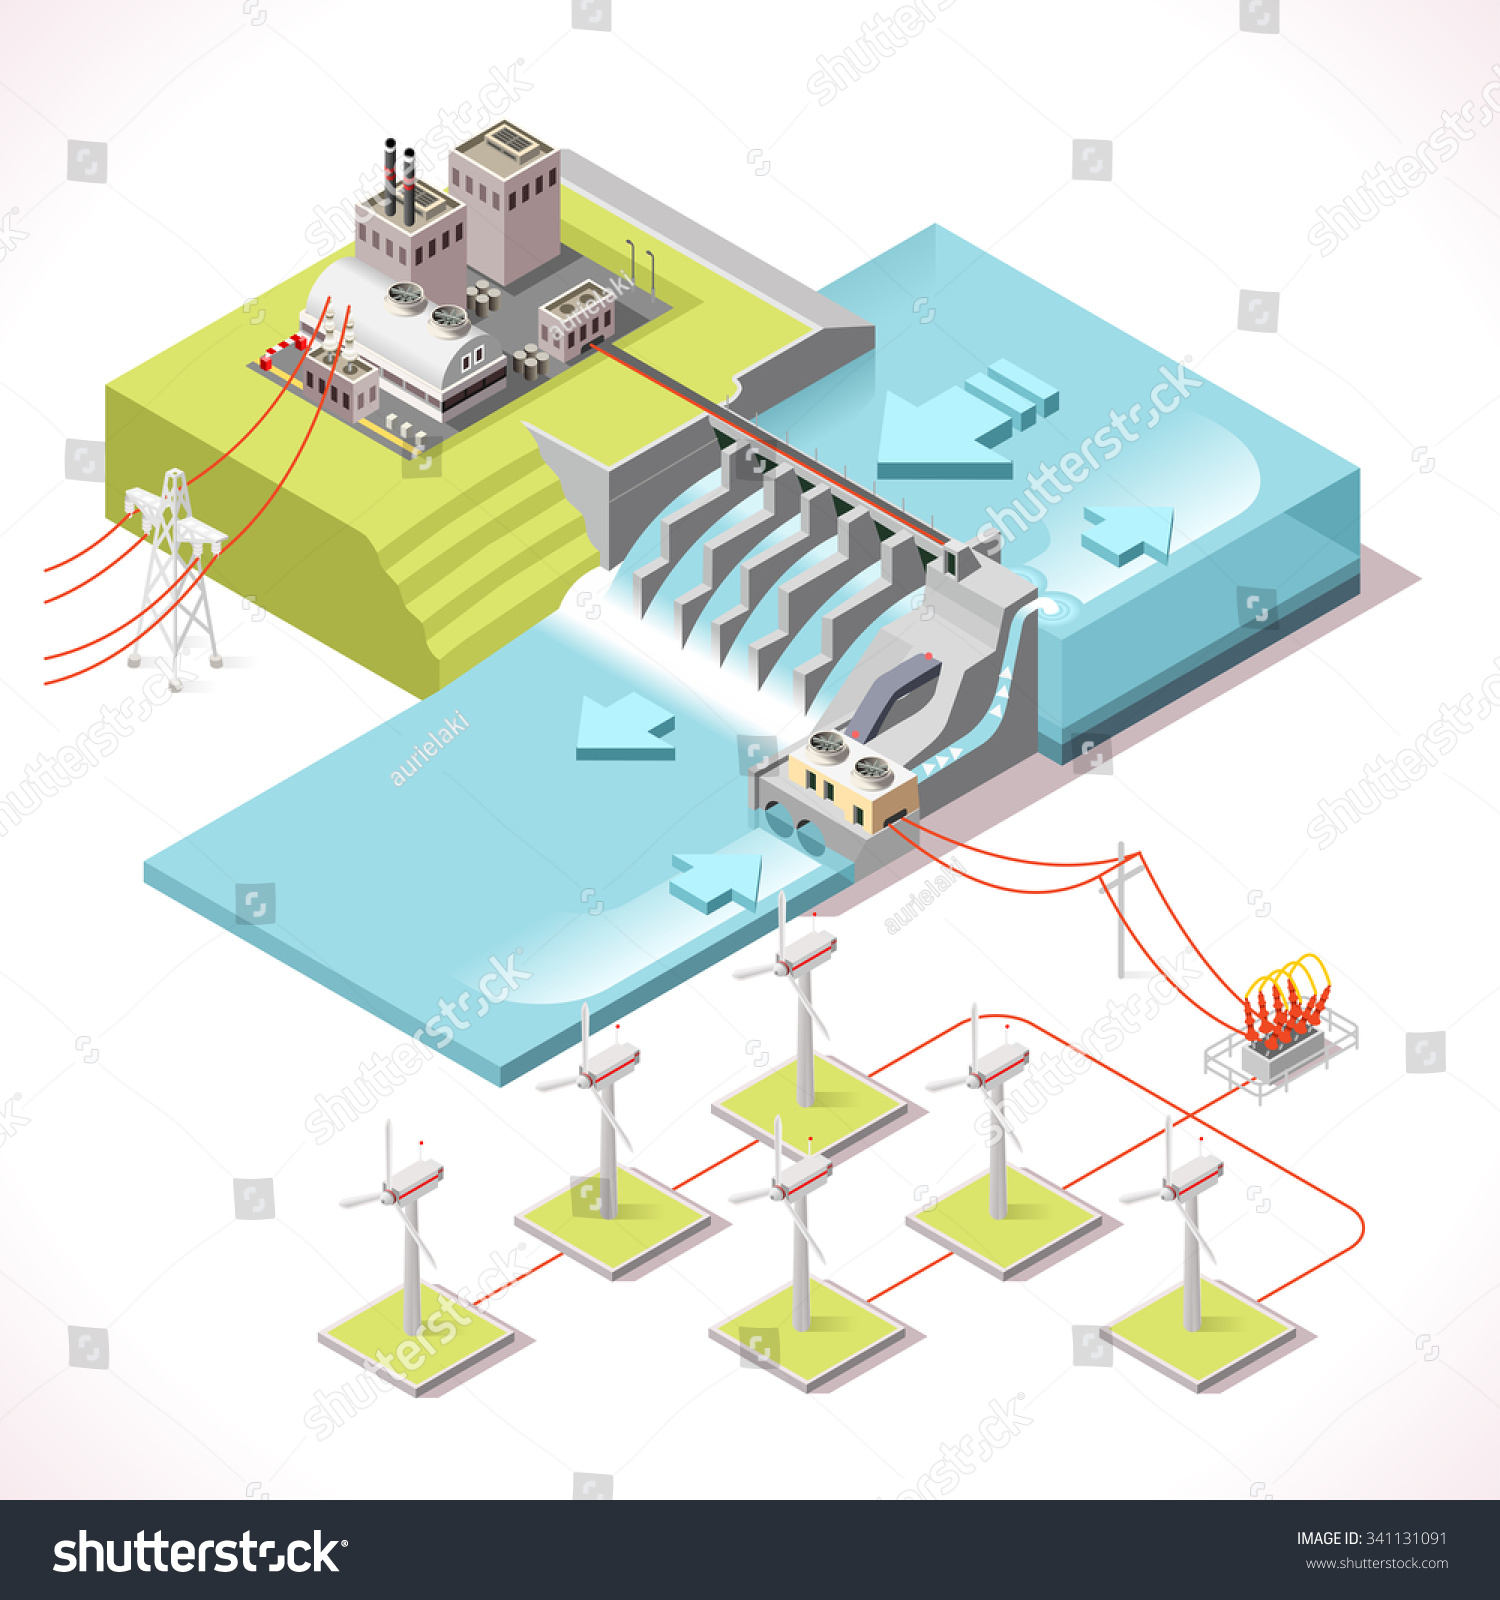 Snap Ppt On Hydro Power Plant Youtube Photos Pinterest With Diagram Mini Hydropower Crossover Wiring Ansoff Marketing